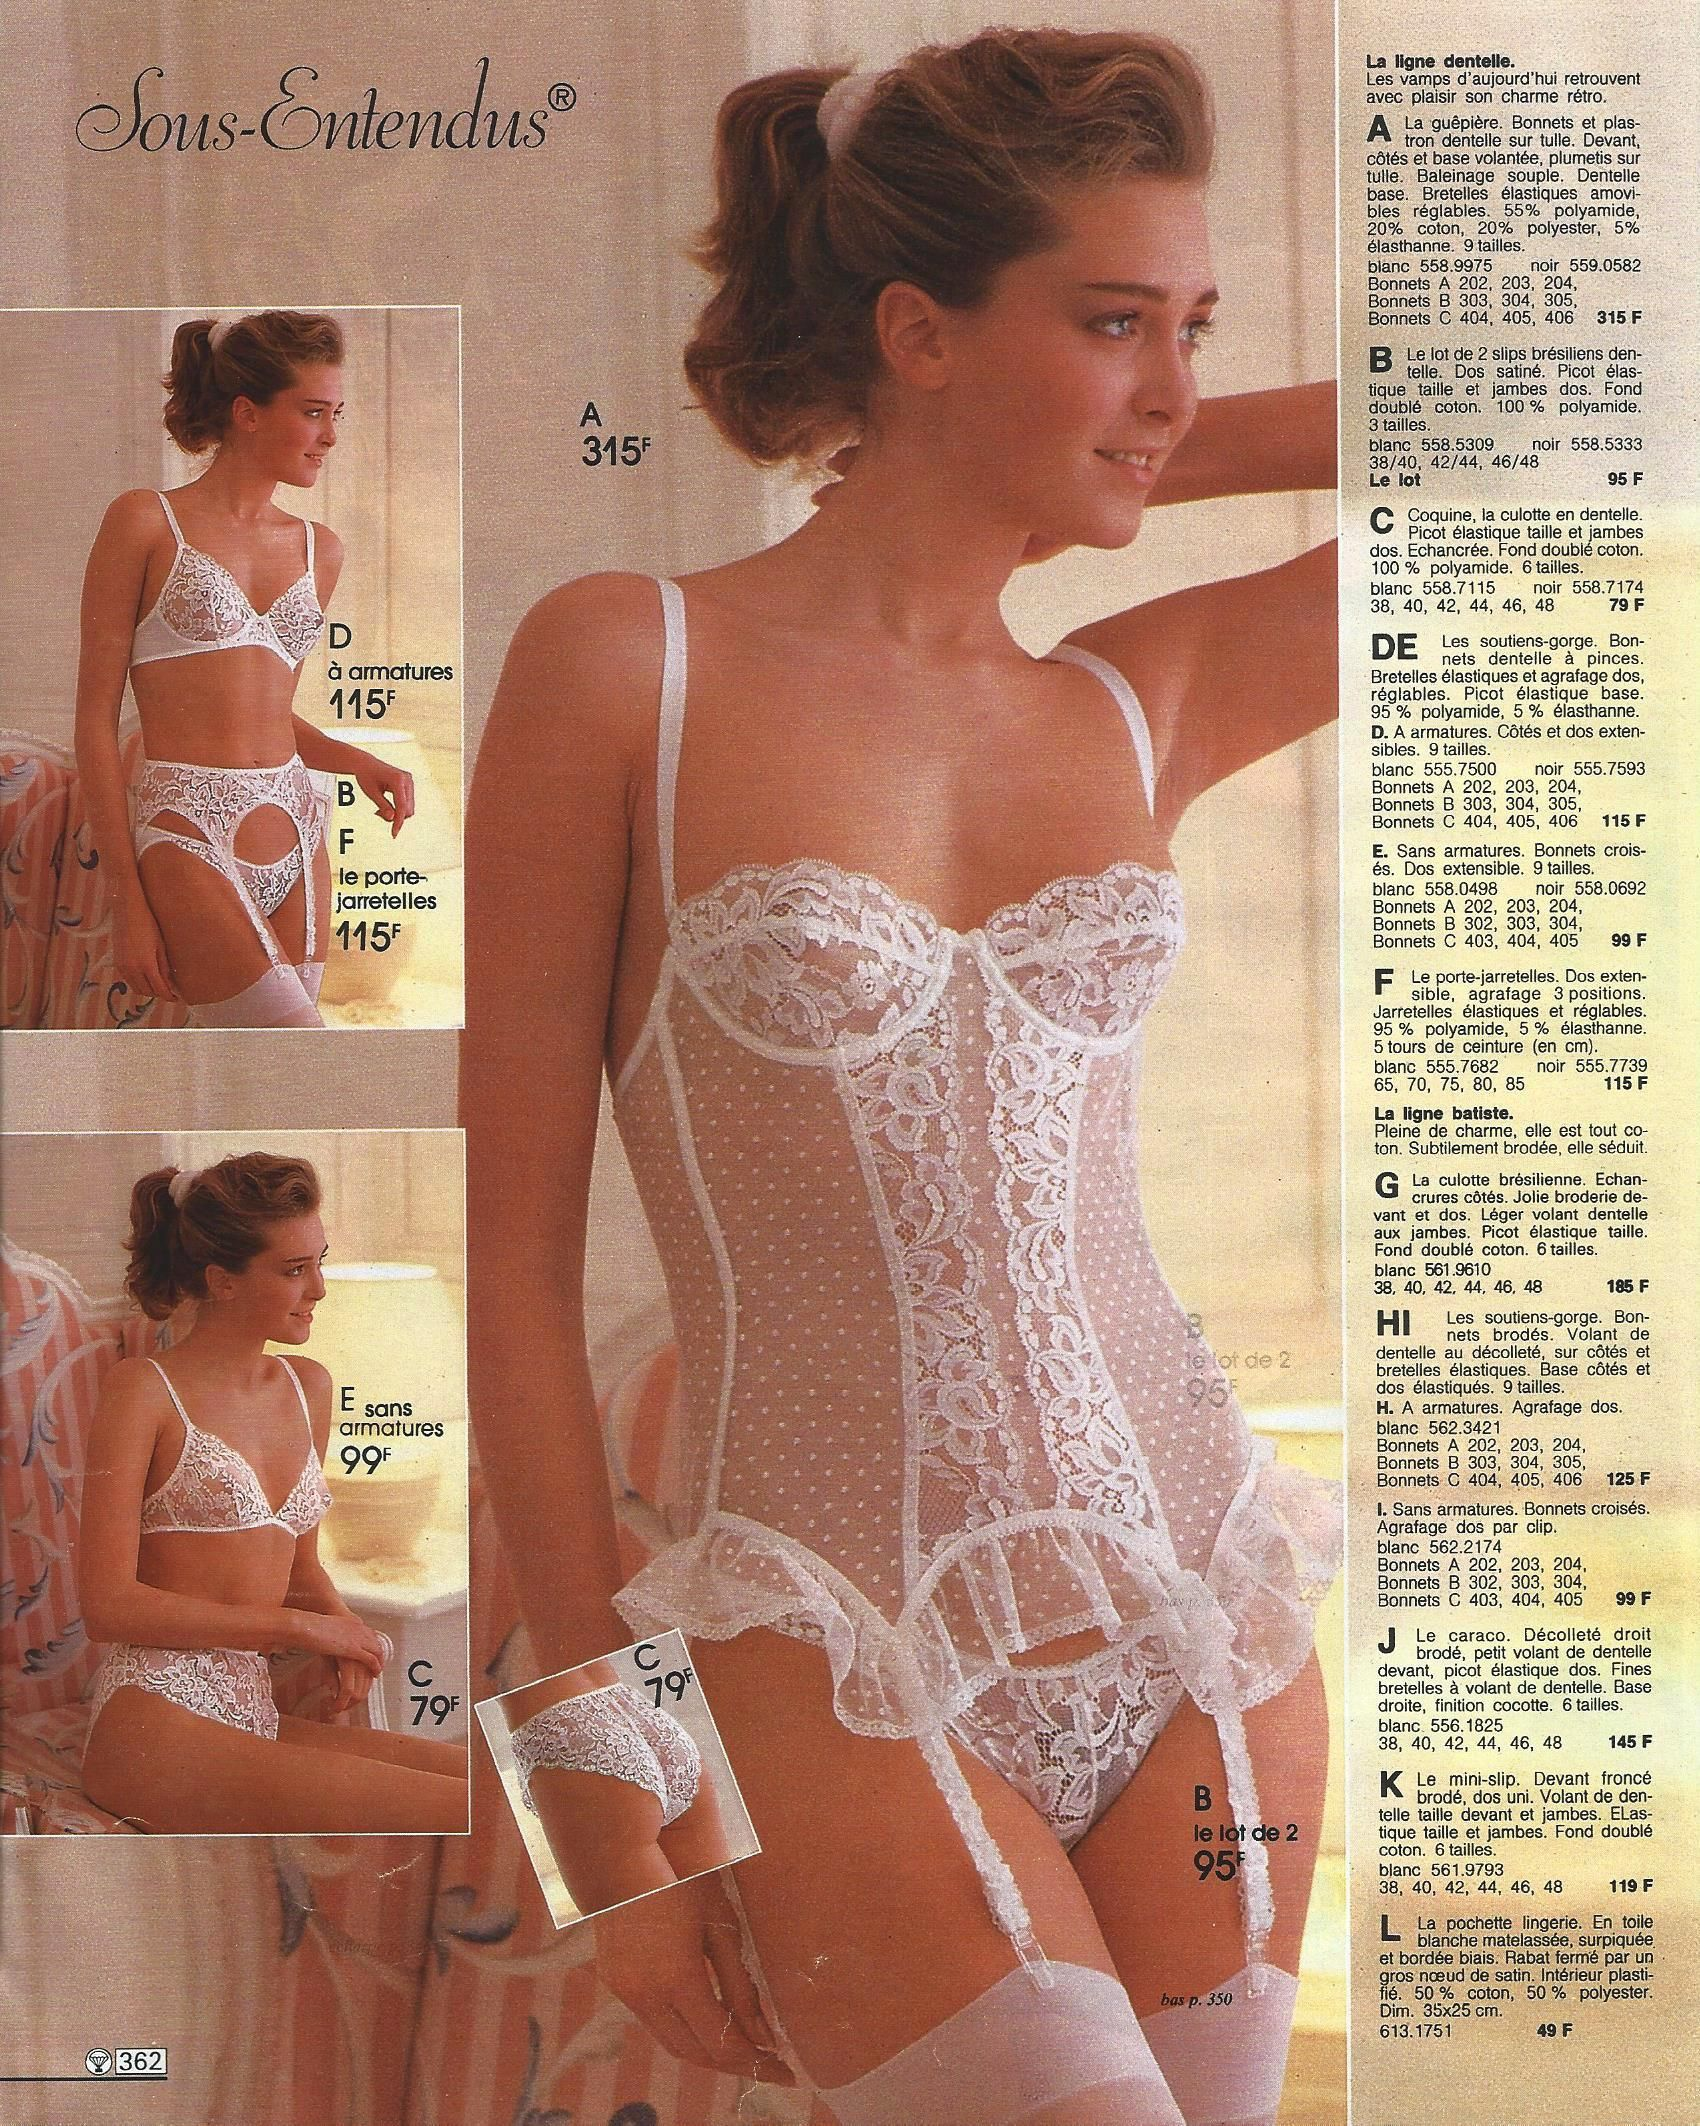 pimpandhostcom-net imgve s~~~~l http://pimpandhost.com/image/50200771-original.html | See-through bras |  Pinterest | Originals, Lingerie and Vintage lingerie